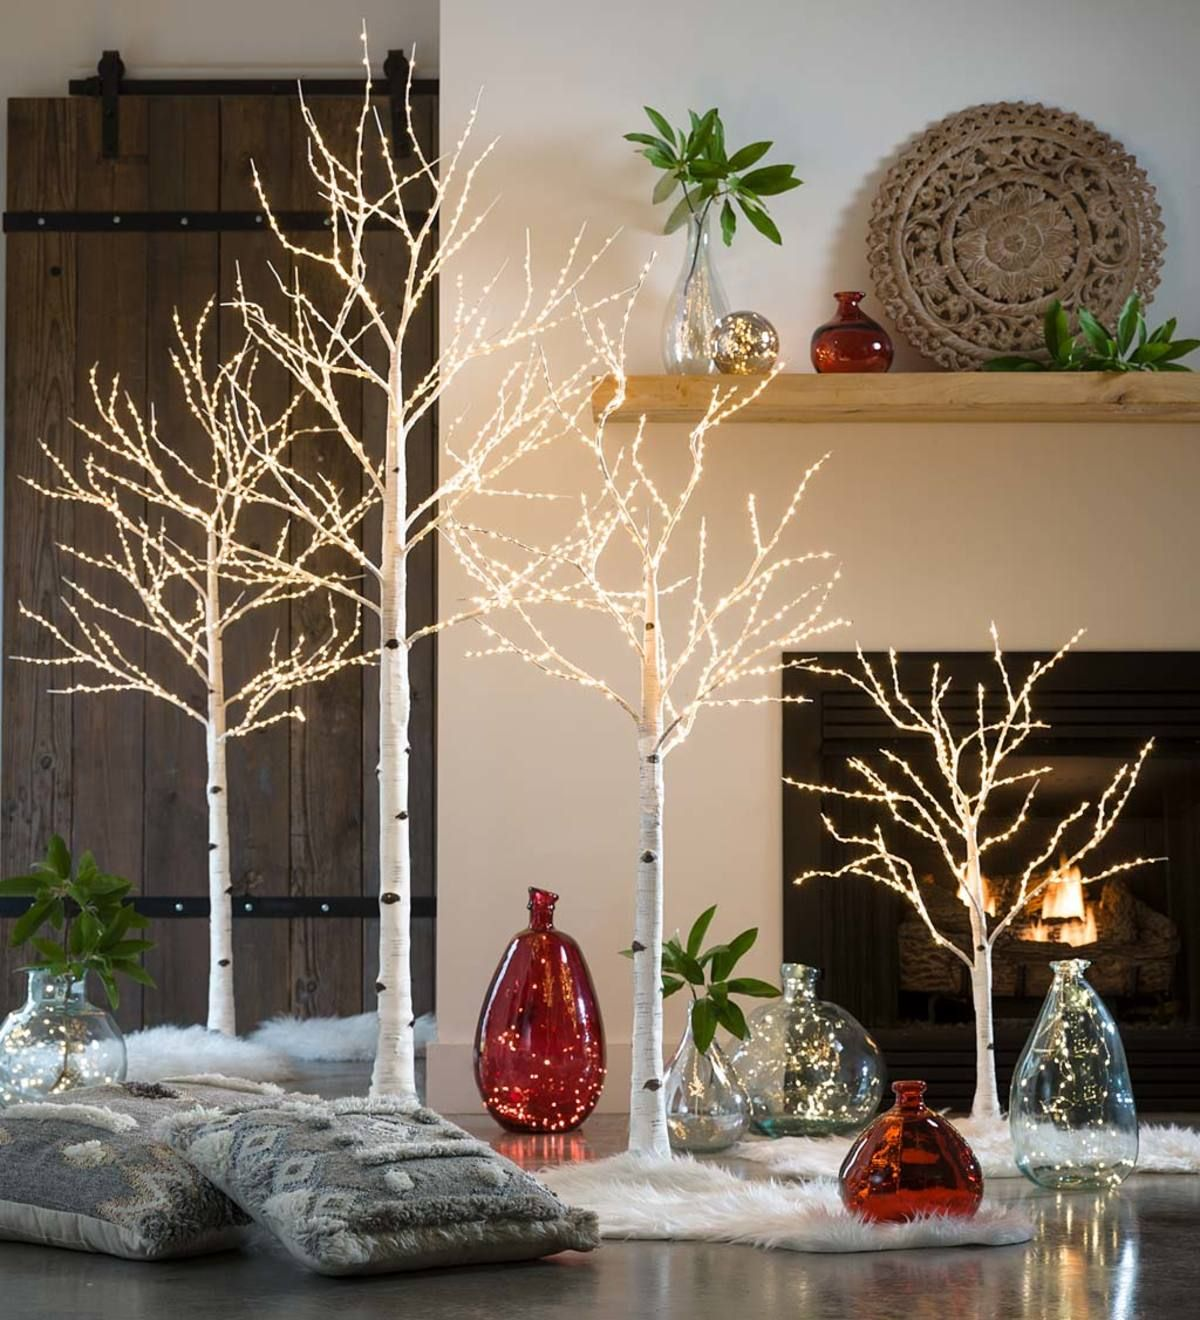 BIRCH LED LIGHT TREES VivaTerra (With images) Elegant